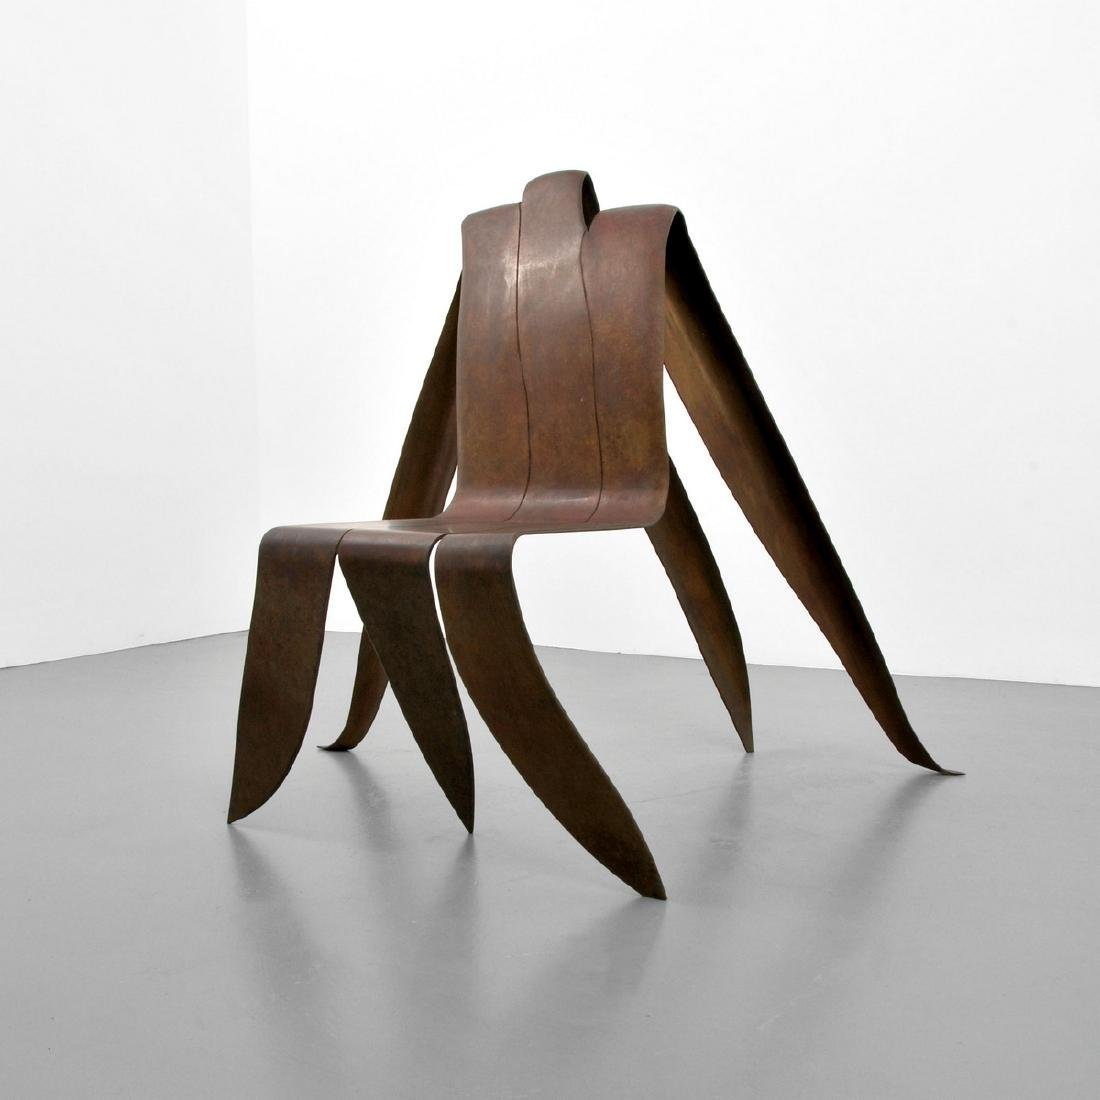 Sculptural Chair, Manner of Vivian Beer, Signed Edition - 4